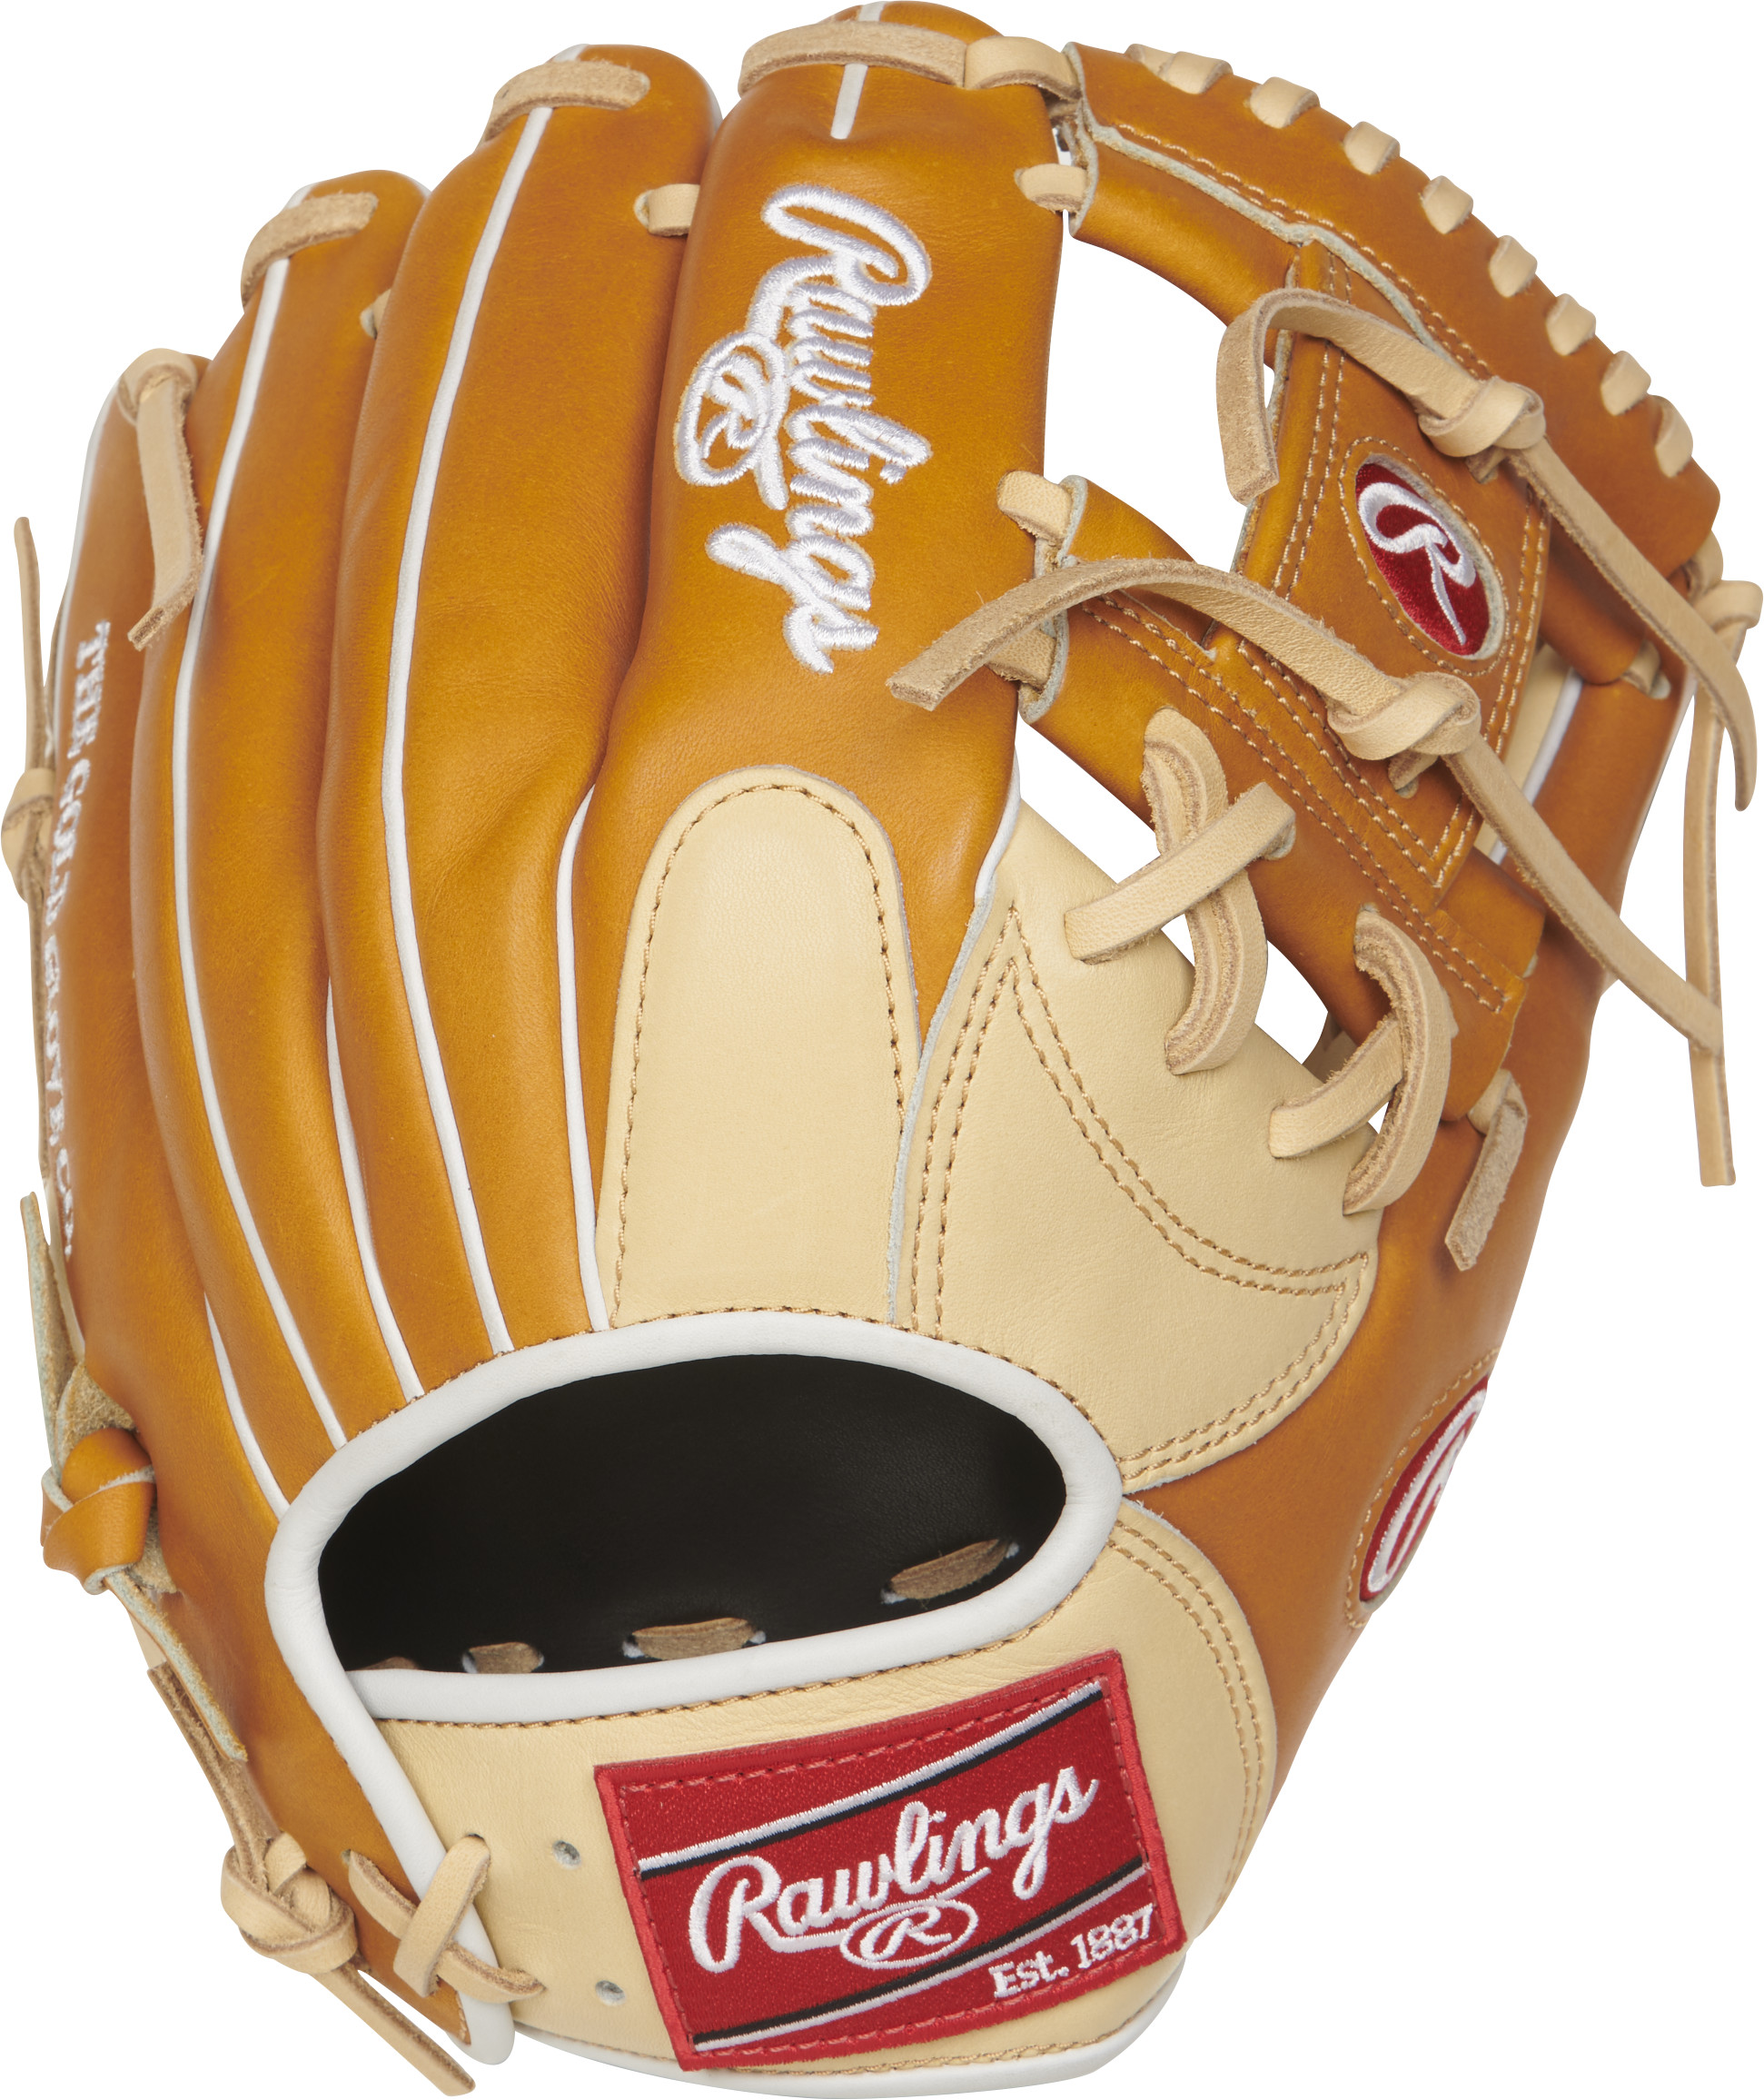 http://www.bestbatdeals.com/images/gloves/rawlings/PRONP4-2CTW-2.jpg